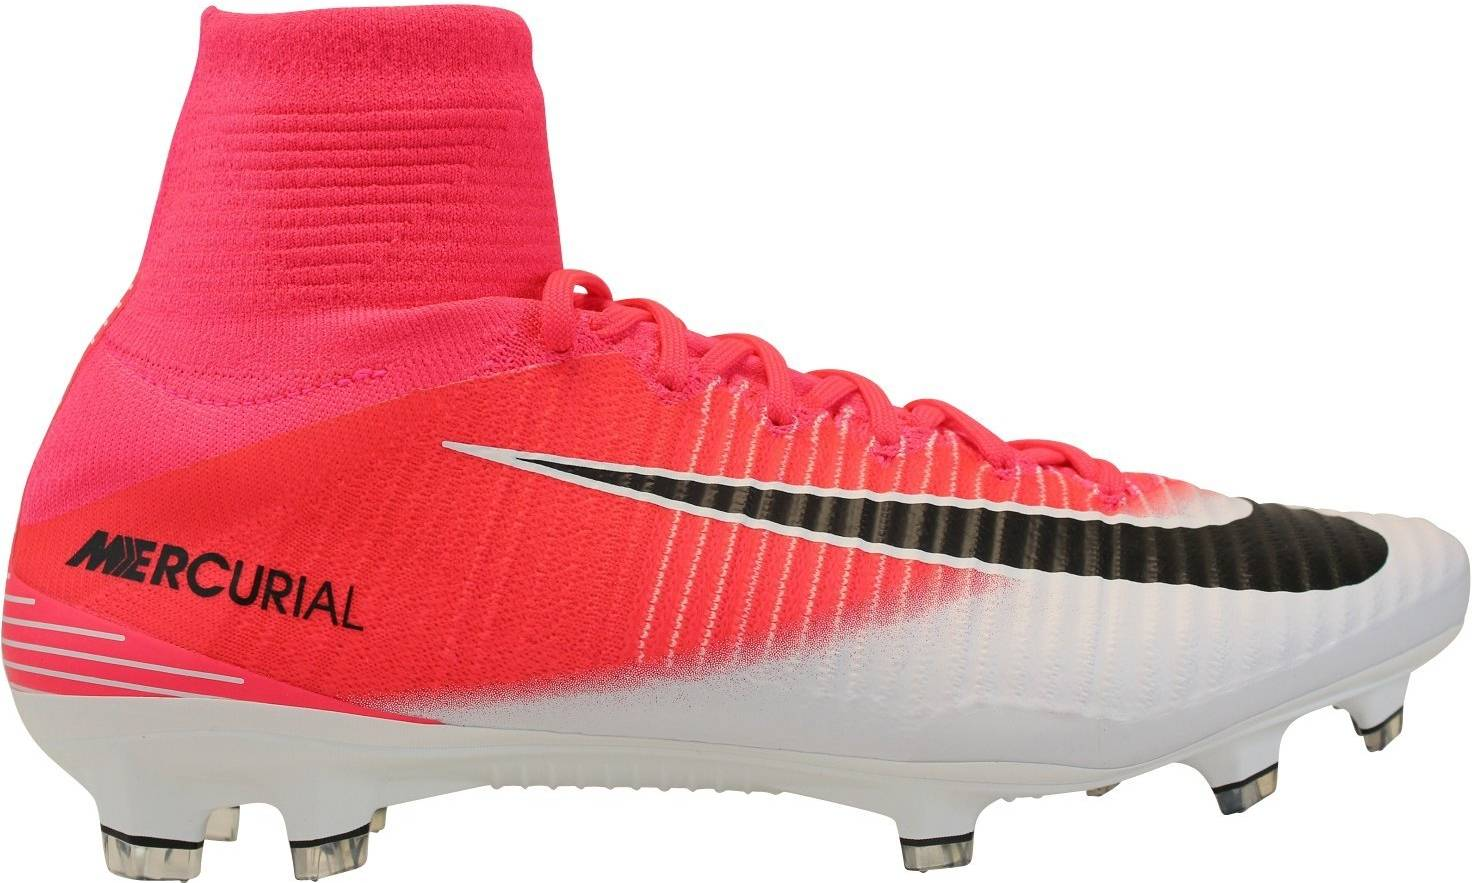 Save 17% on Pink Nike Soccer Cleats (9